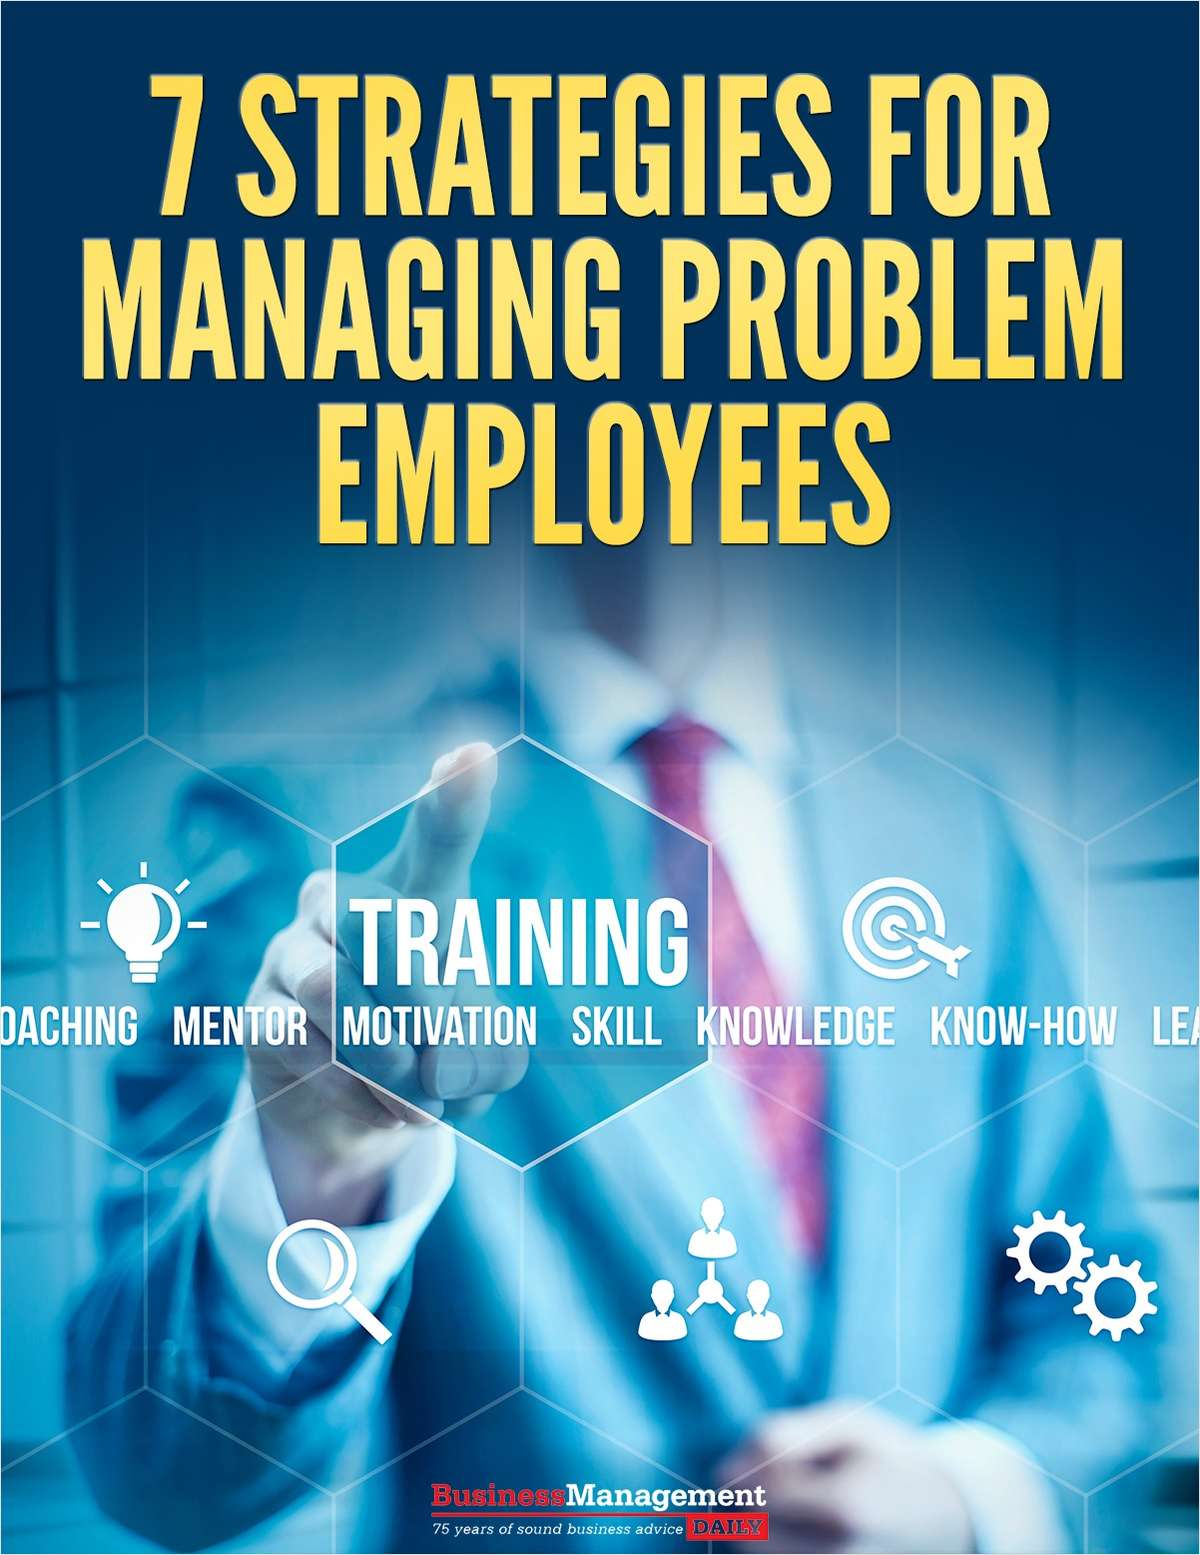 7 Strategies for Managing Problem Employees